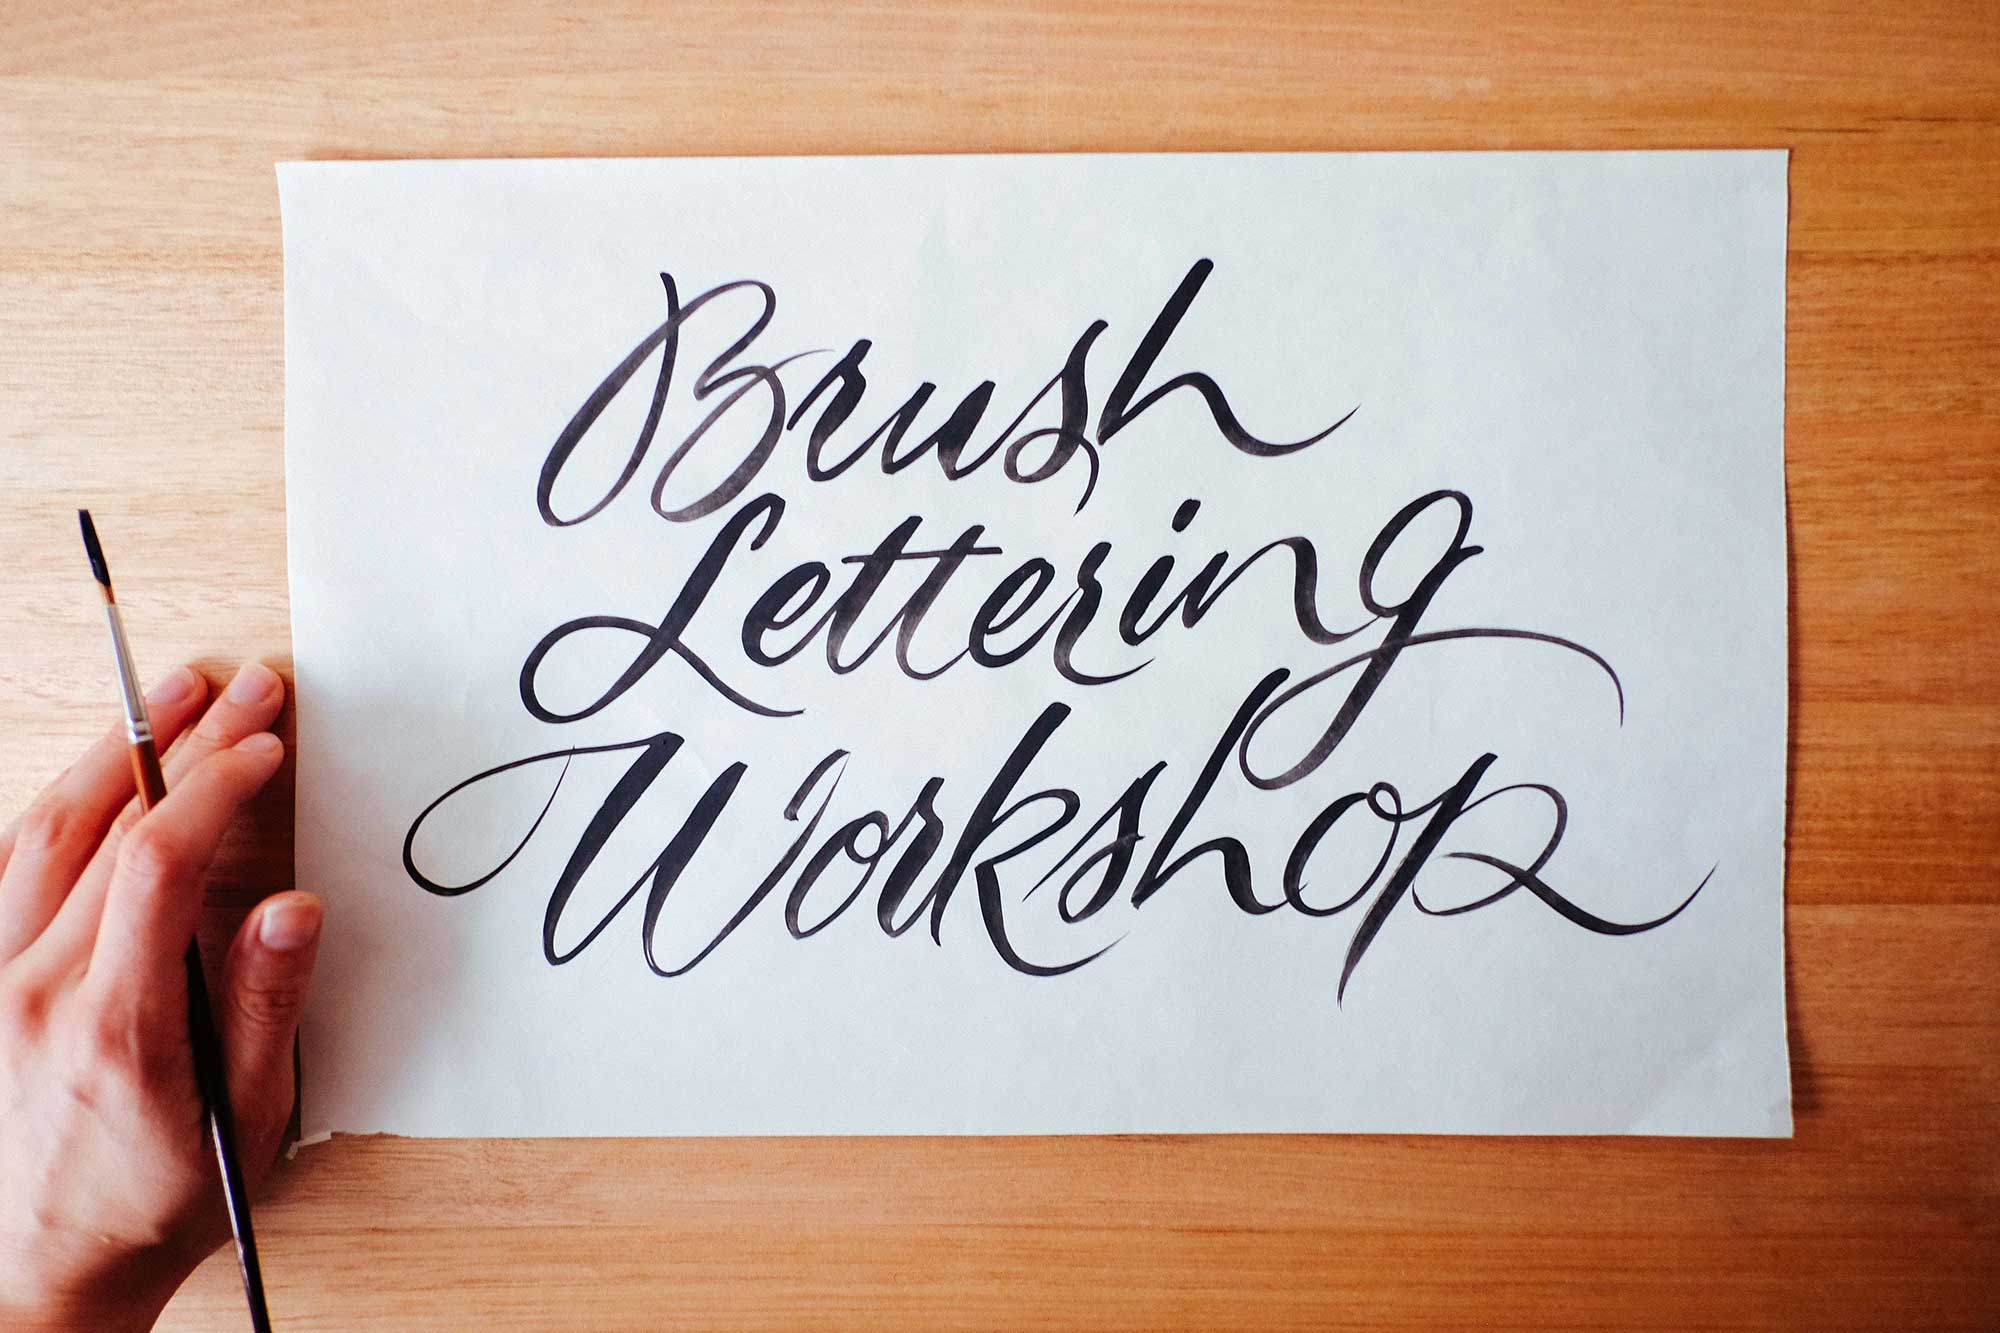 Brush Lettering Workshop, London 19th-20th August 2017